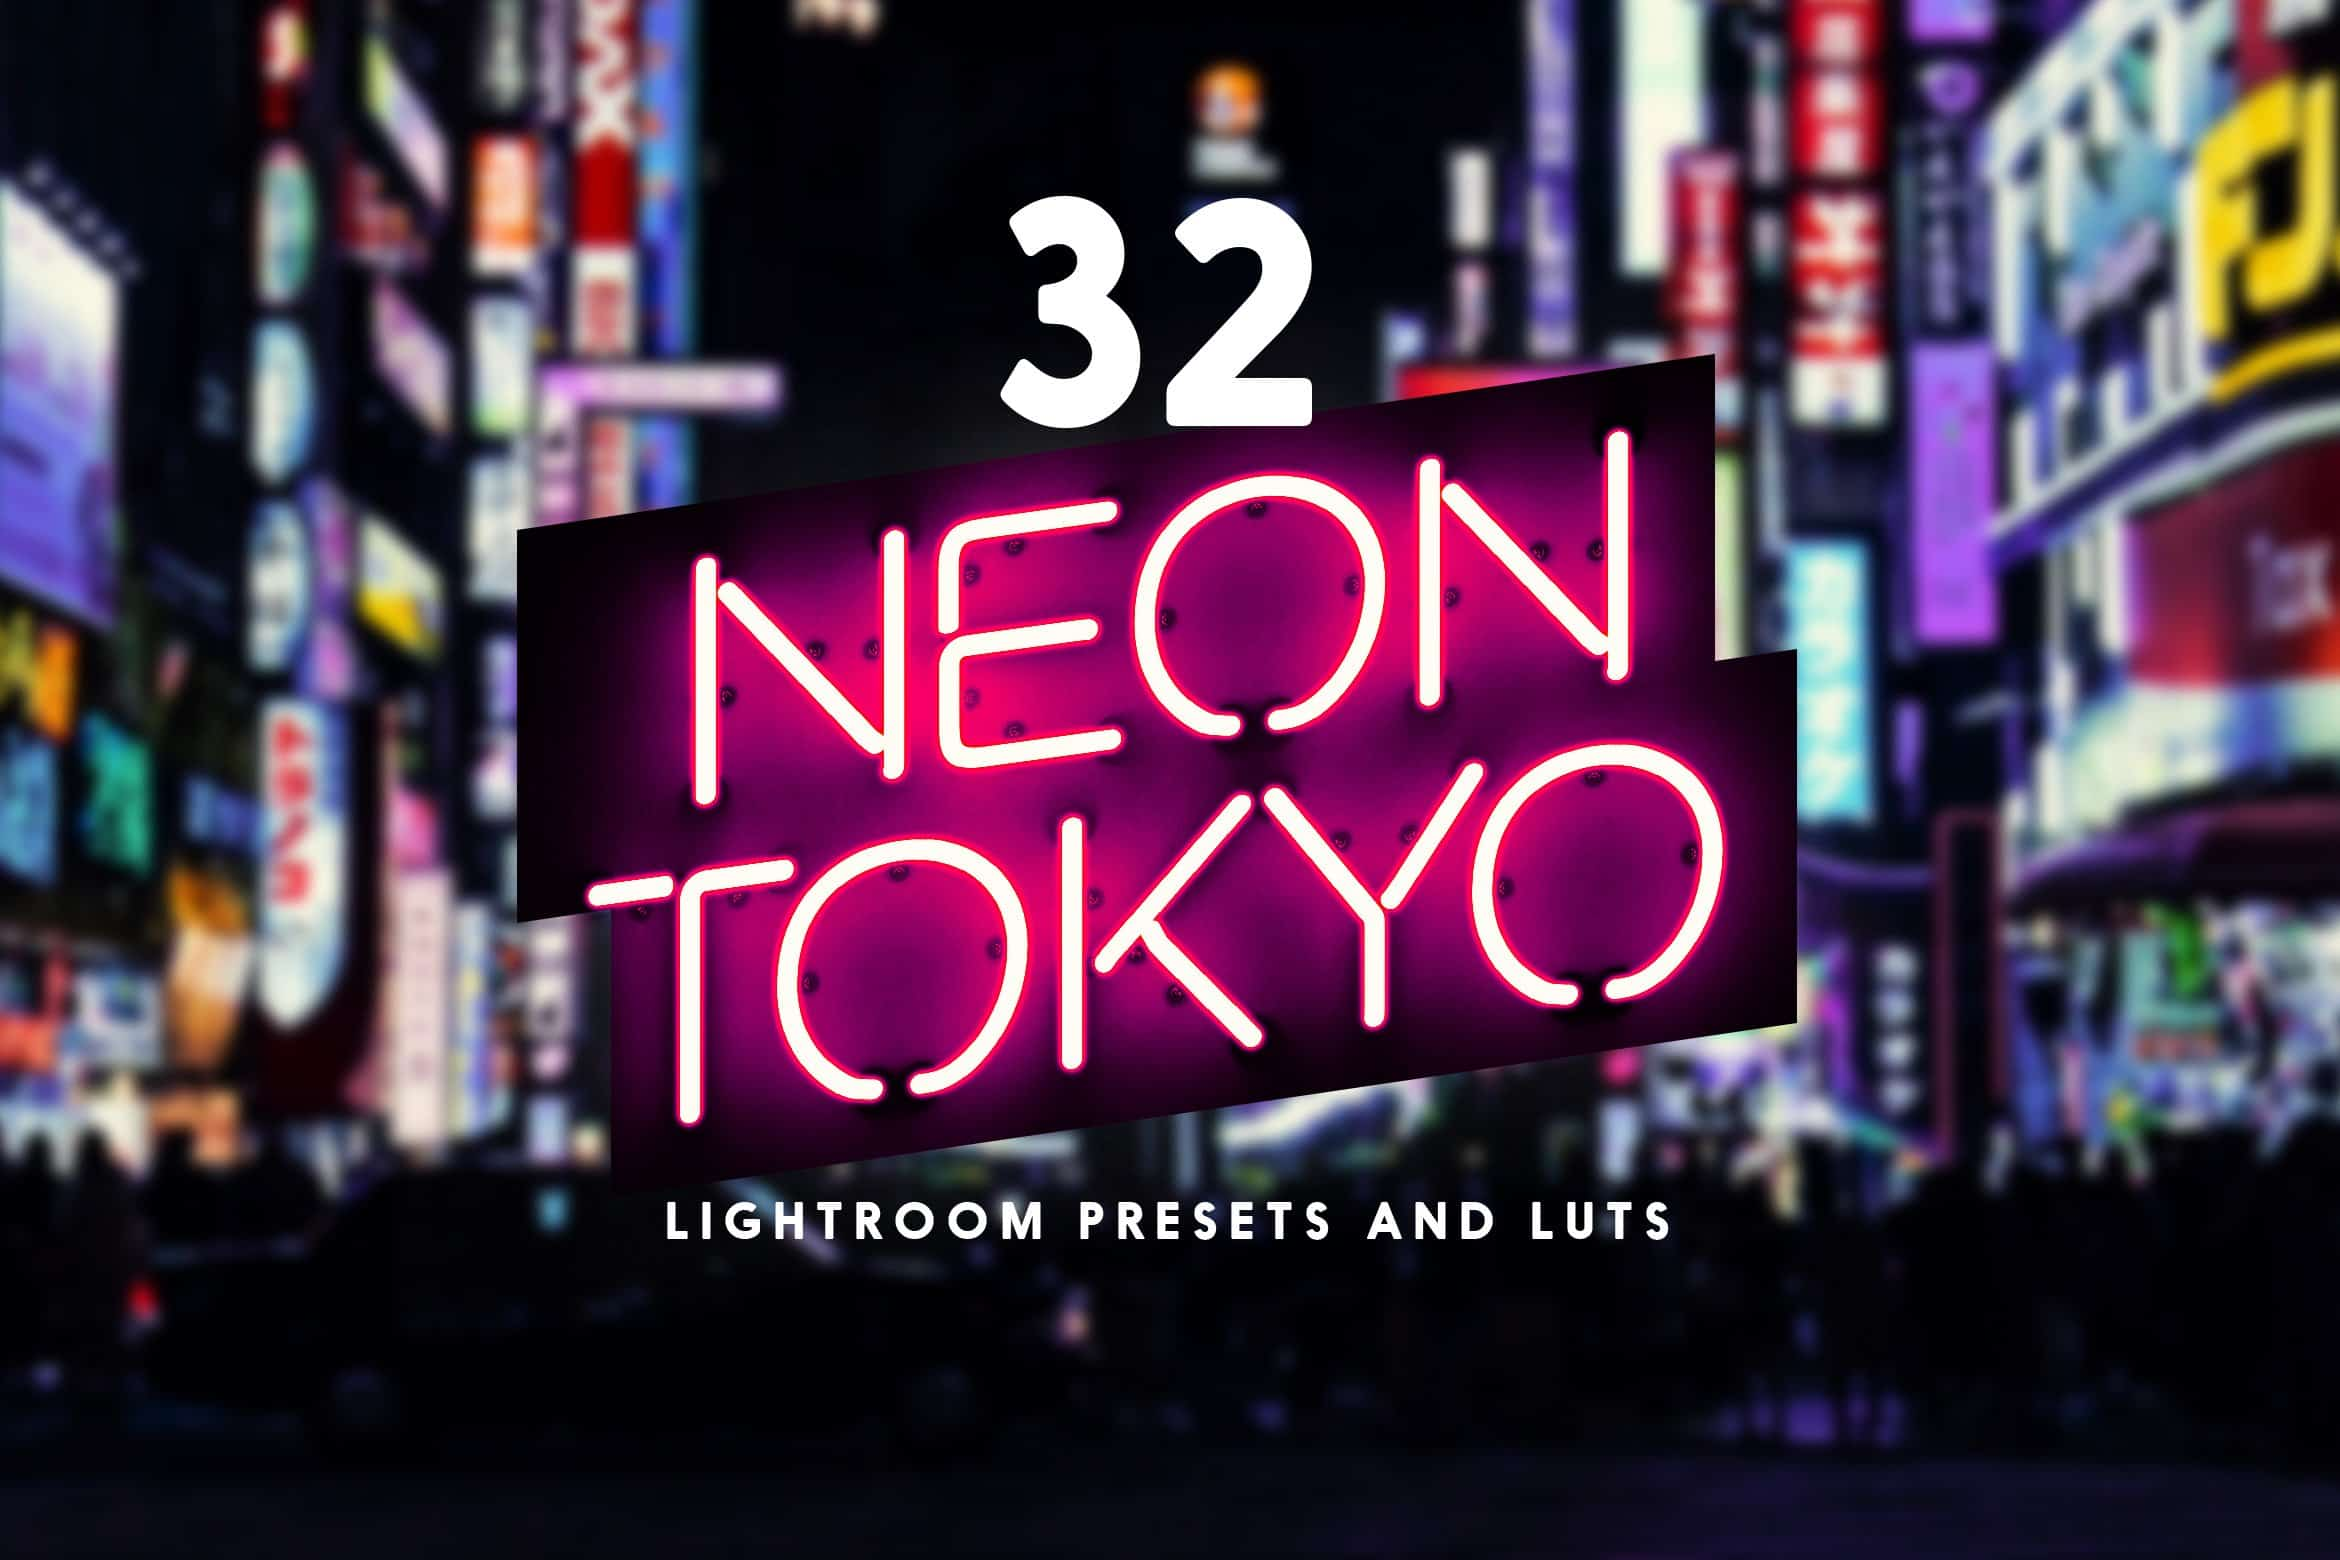 8 Free Neon Tokyo Lightroom Presets and LUTs